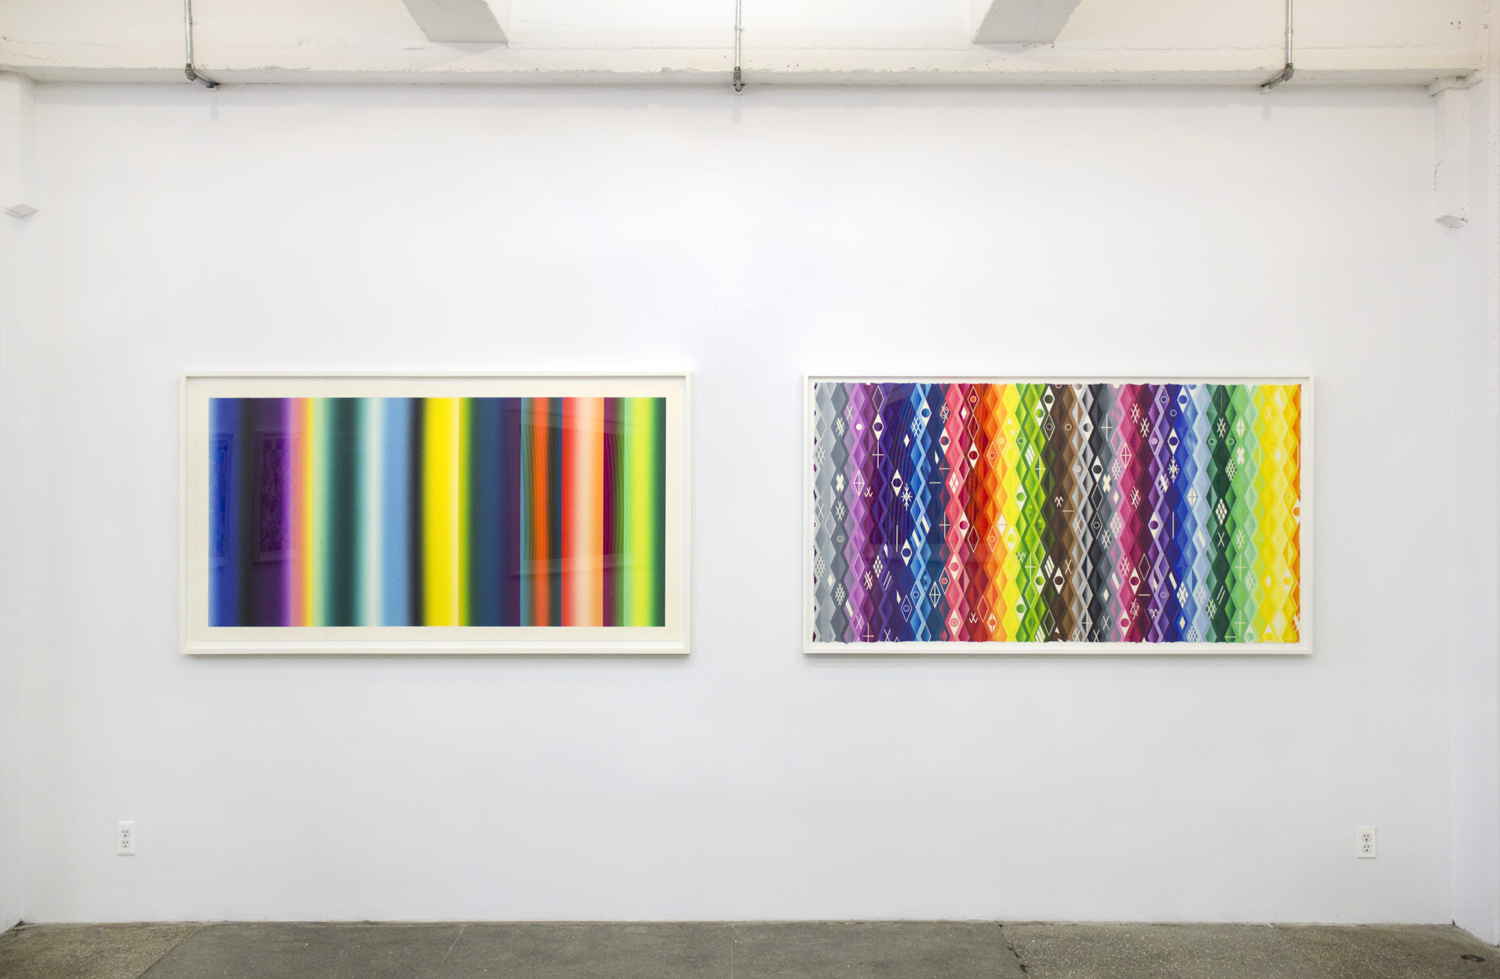 Installation View: Polly Apfelbaum: Atomic Mystic Portraits